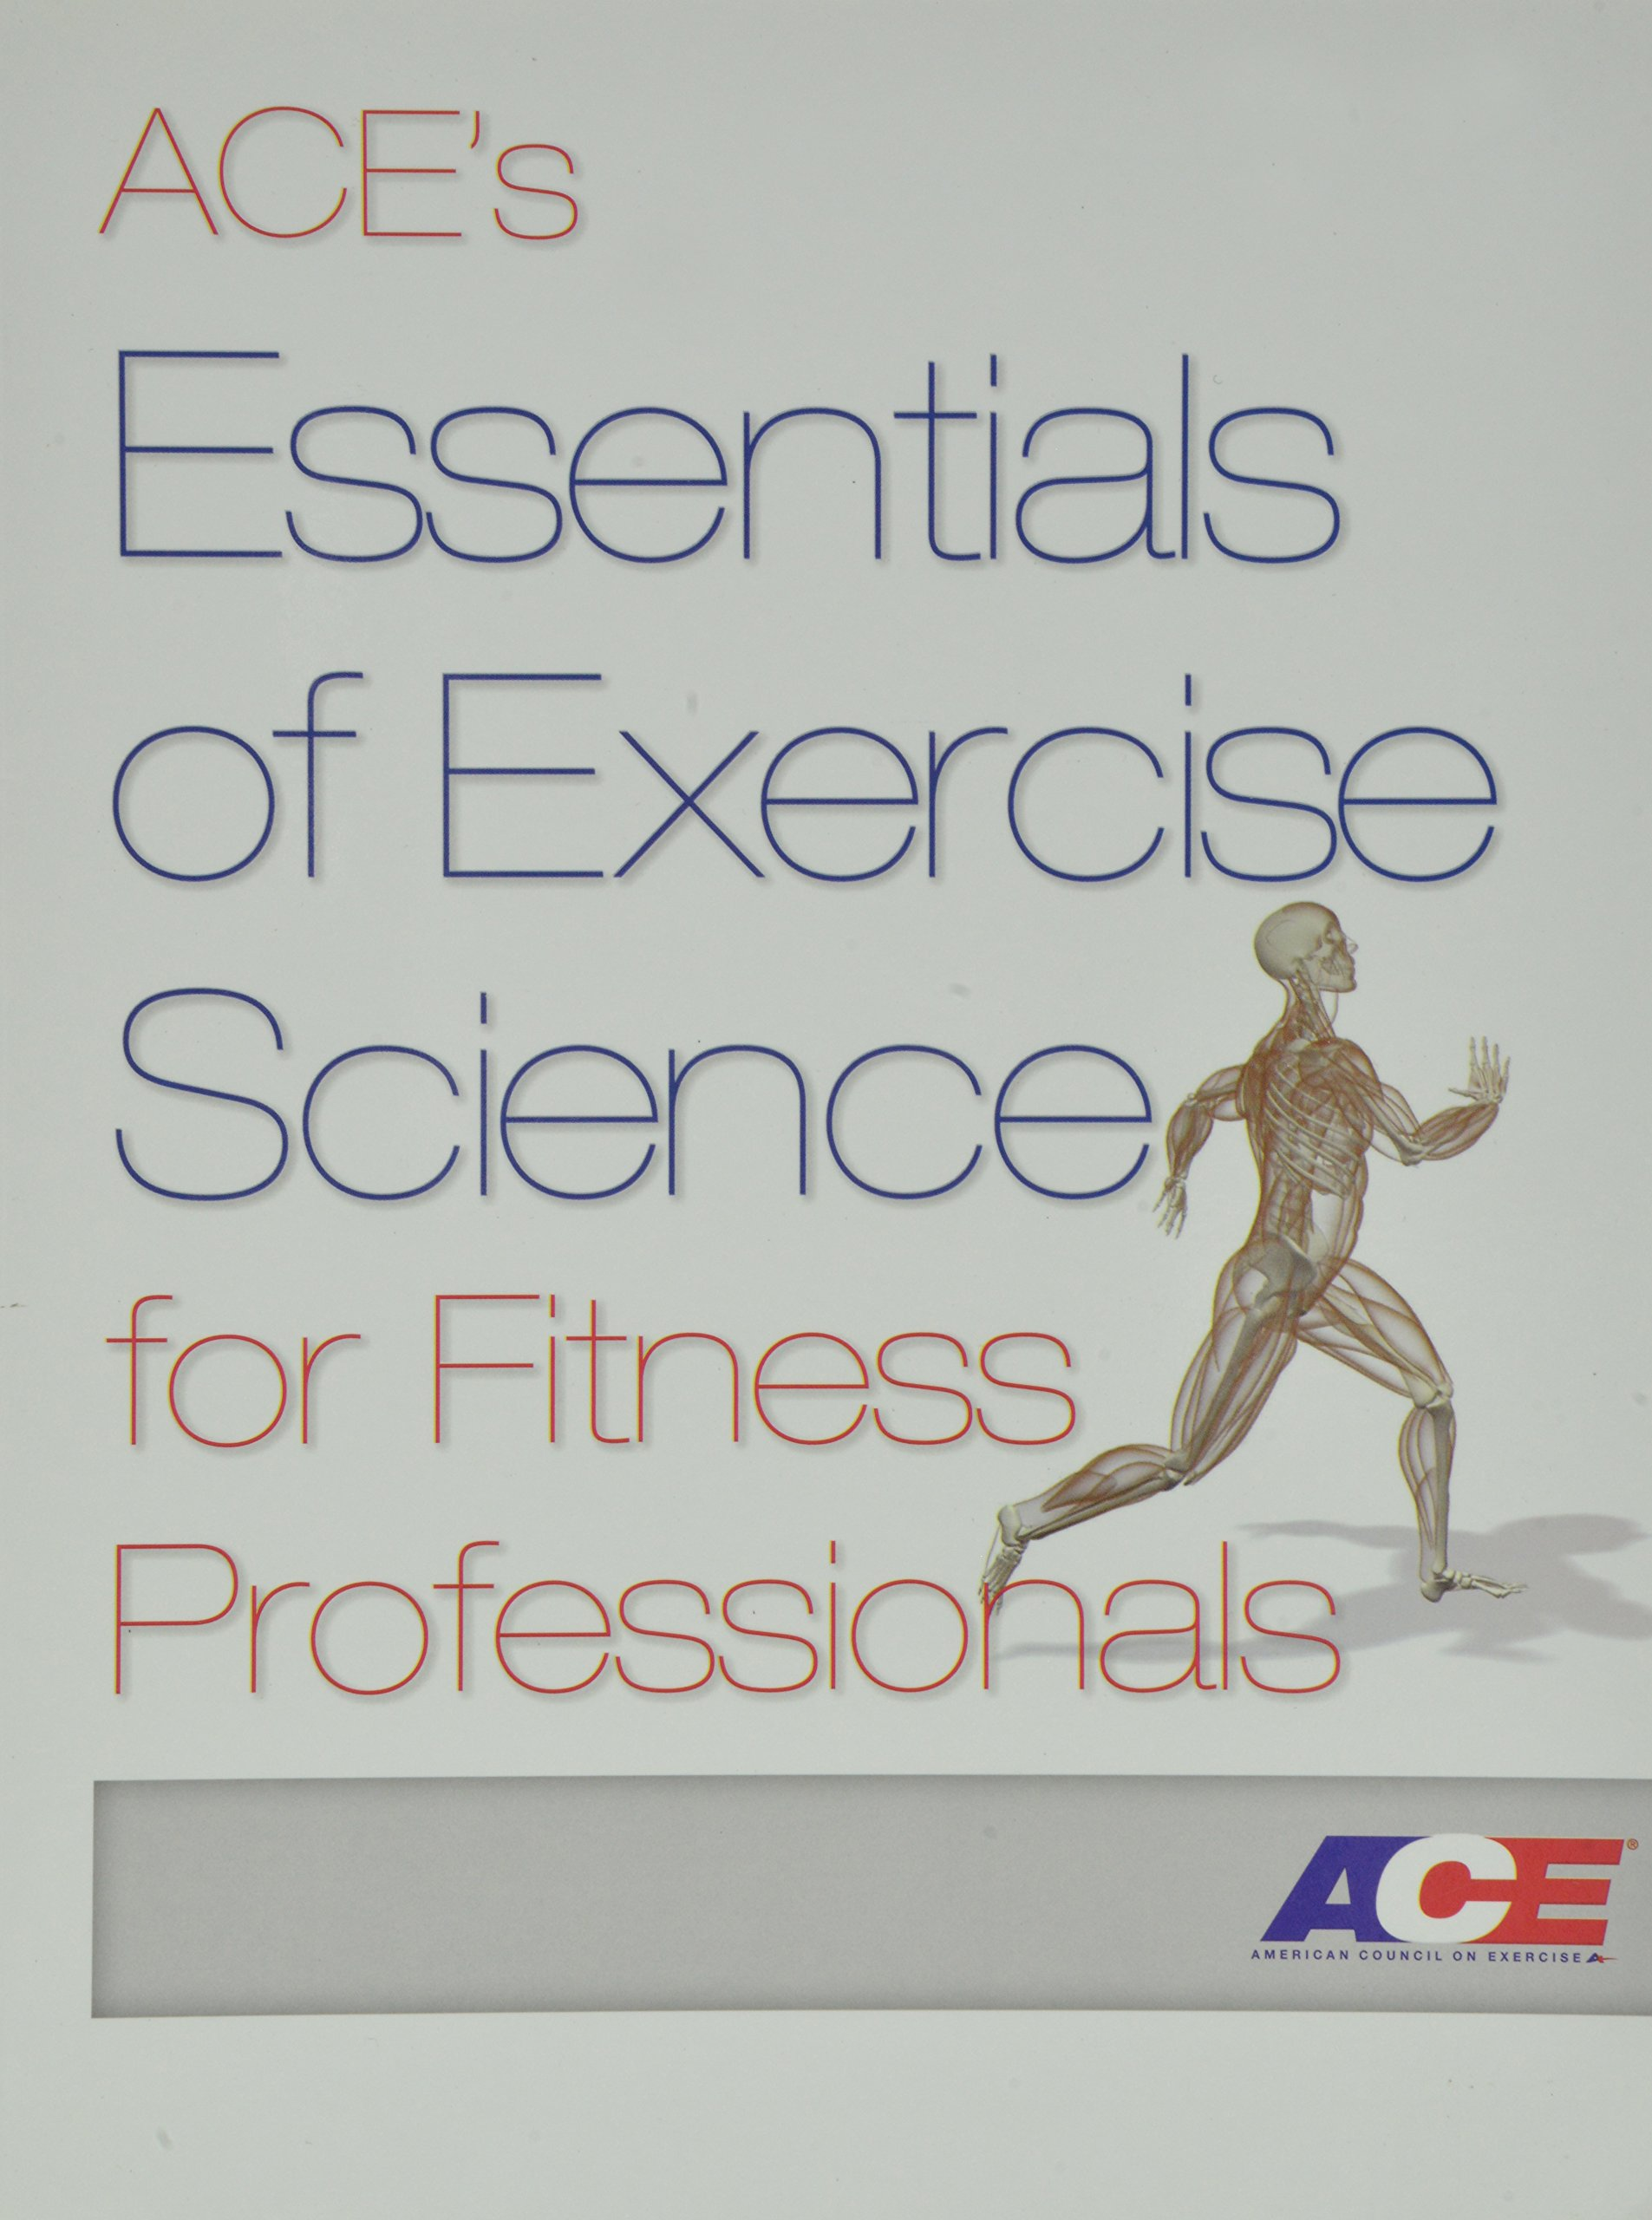 Essentials of Exercise Science: AM.COUNCIL EX.: 9781890720315 ...